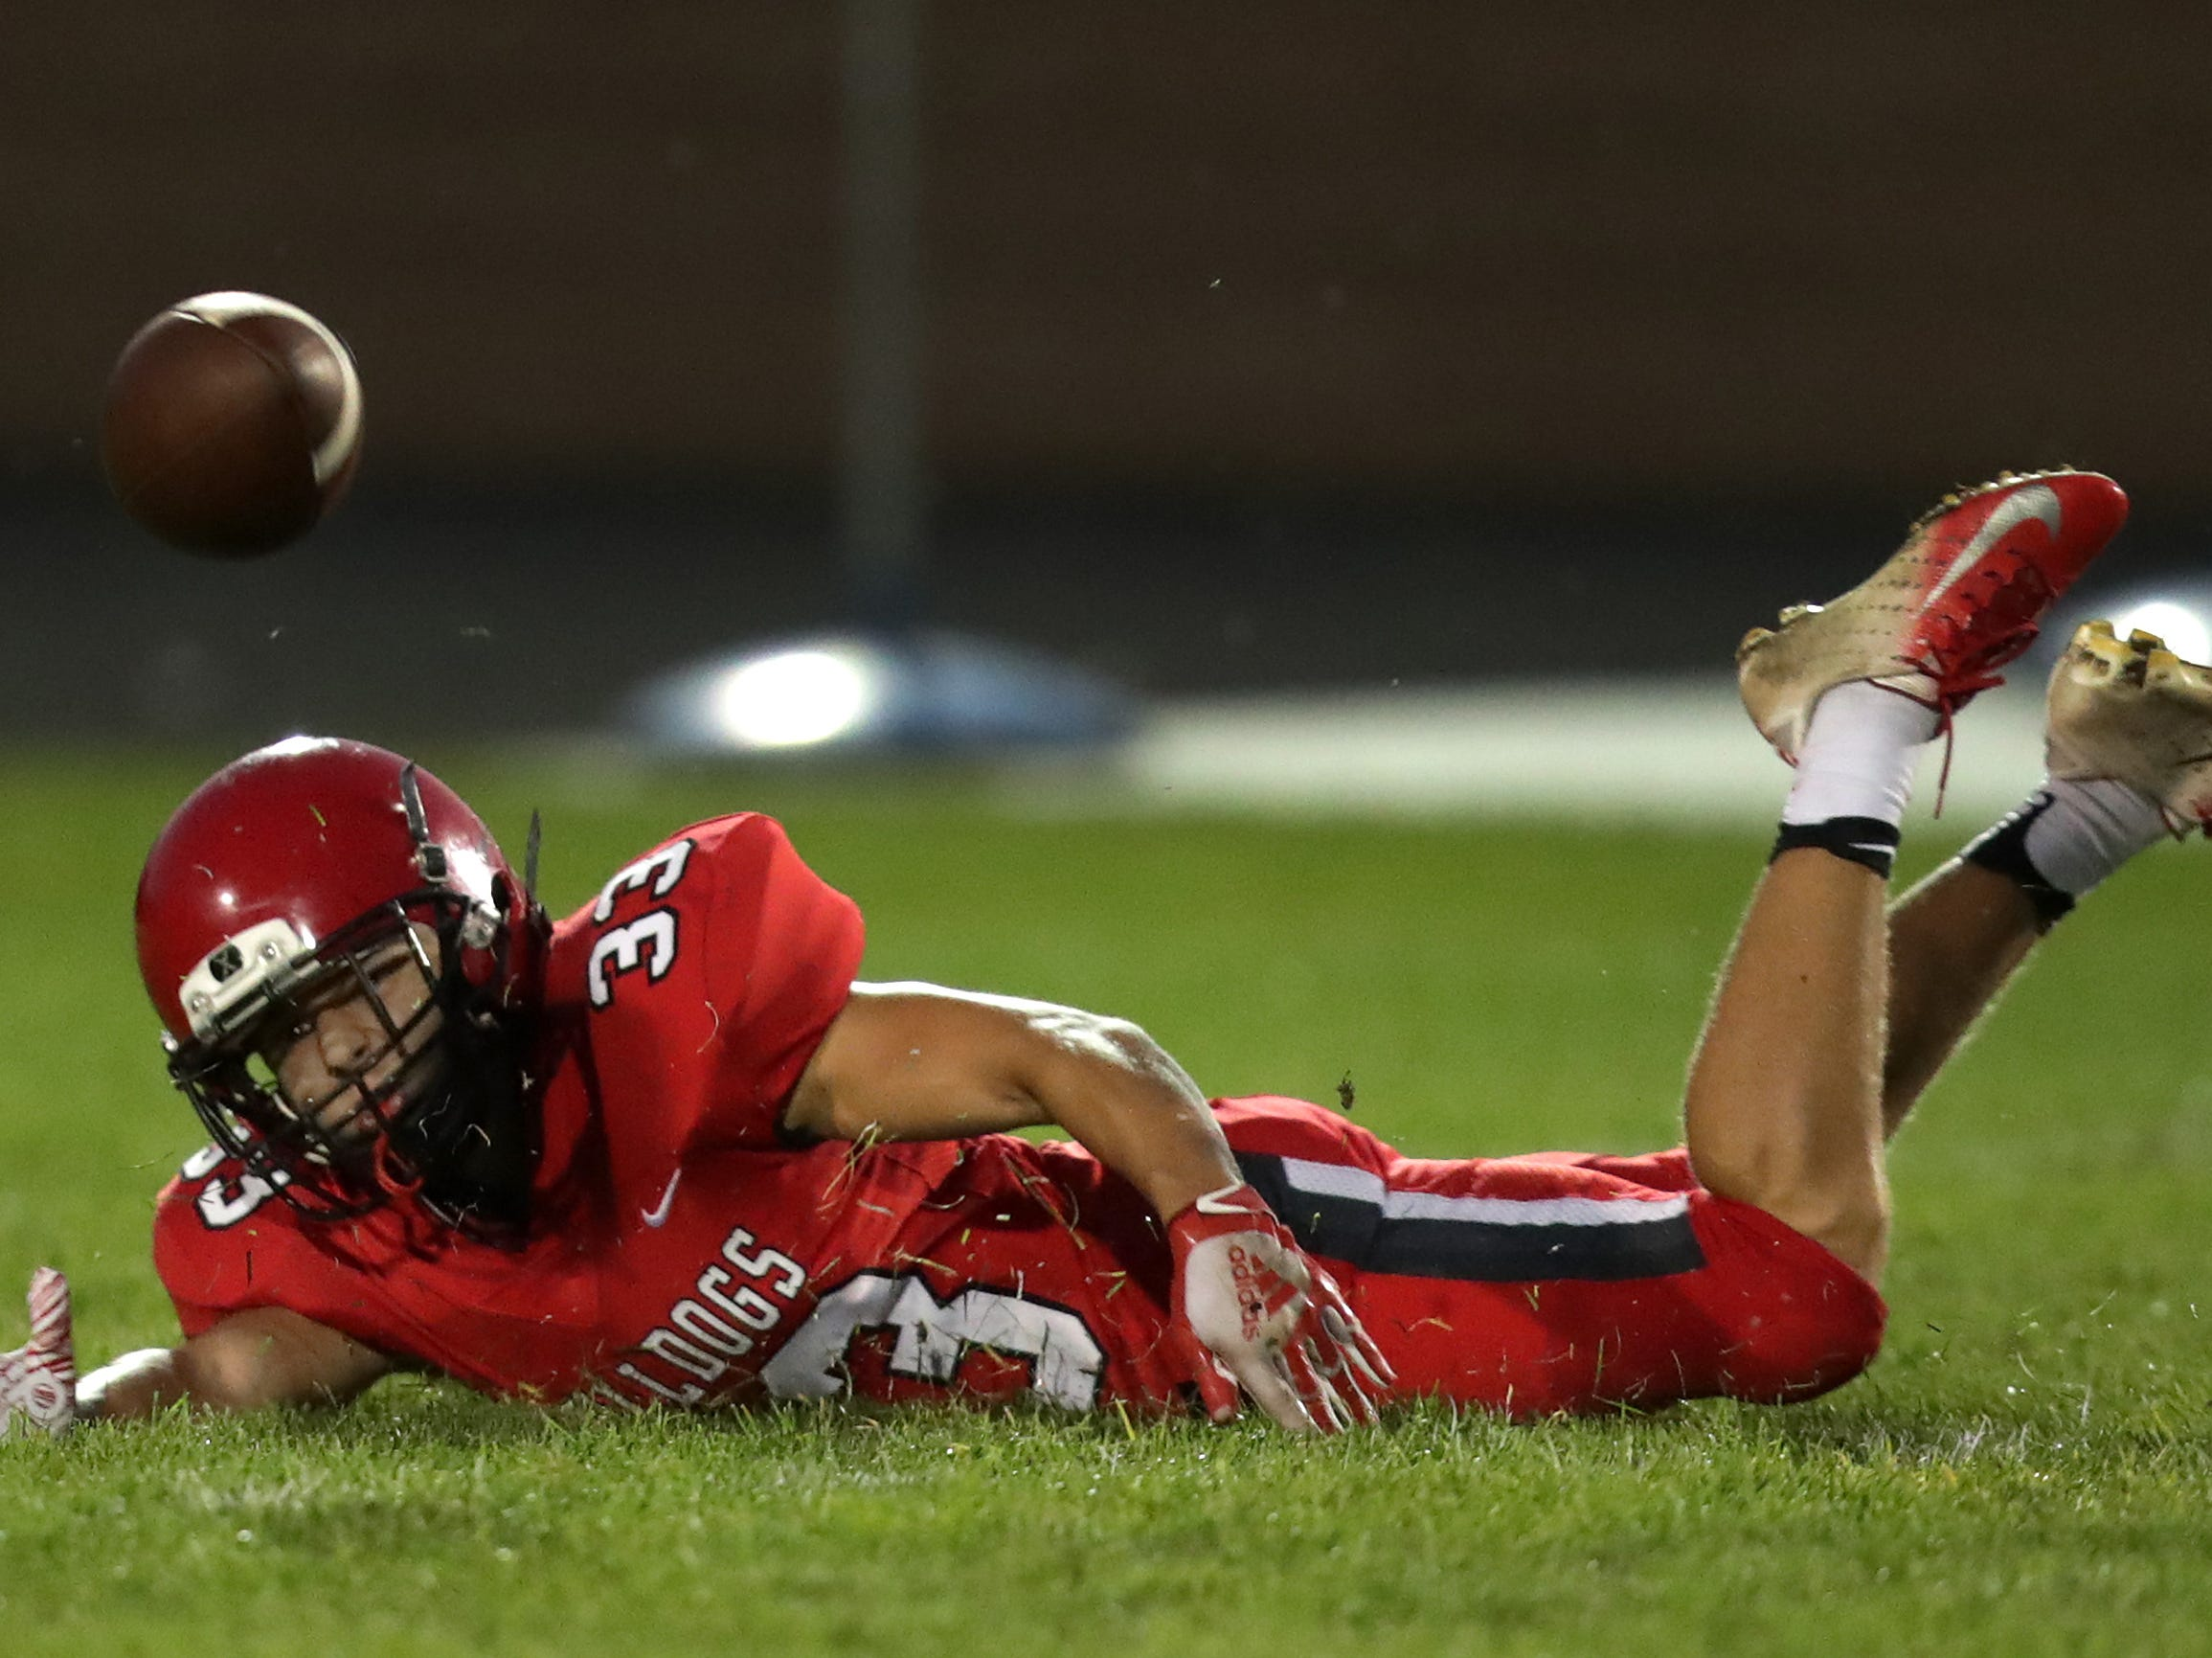 New London High School's #33 Vincent Winkler dives for a pass against Menasha High School during their football game on Friday, September 14, 2018, New London, Wis. Menasha defeated the Bulldogs 34 to 28.